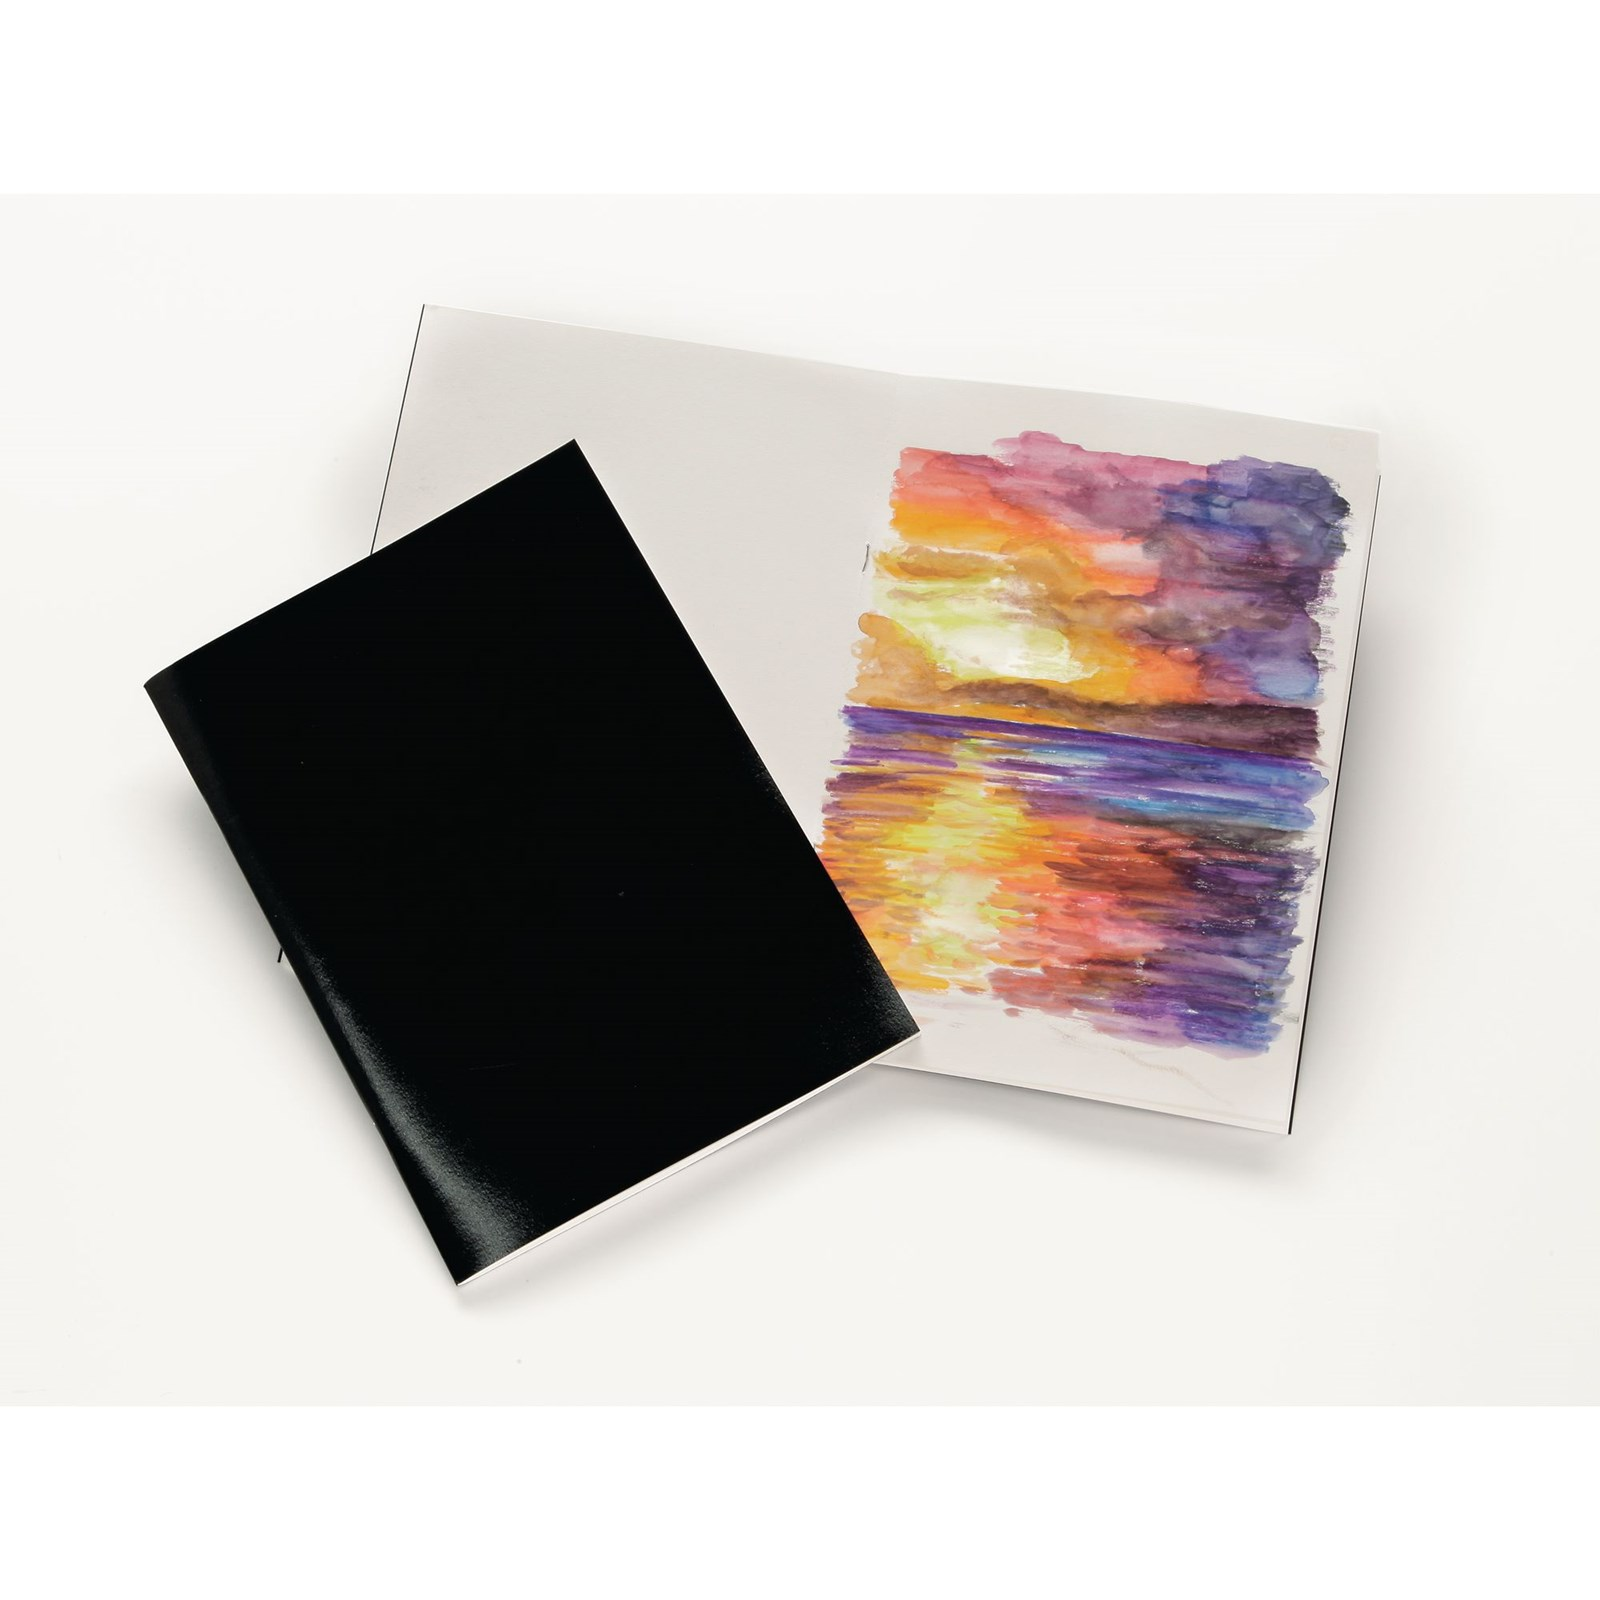 Laminated Stapled Sketchbooks - A3